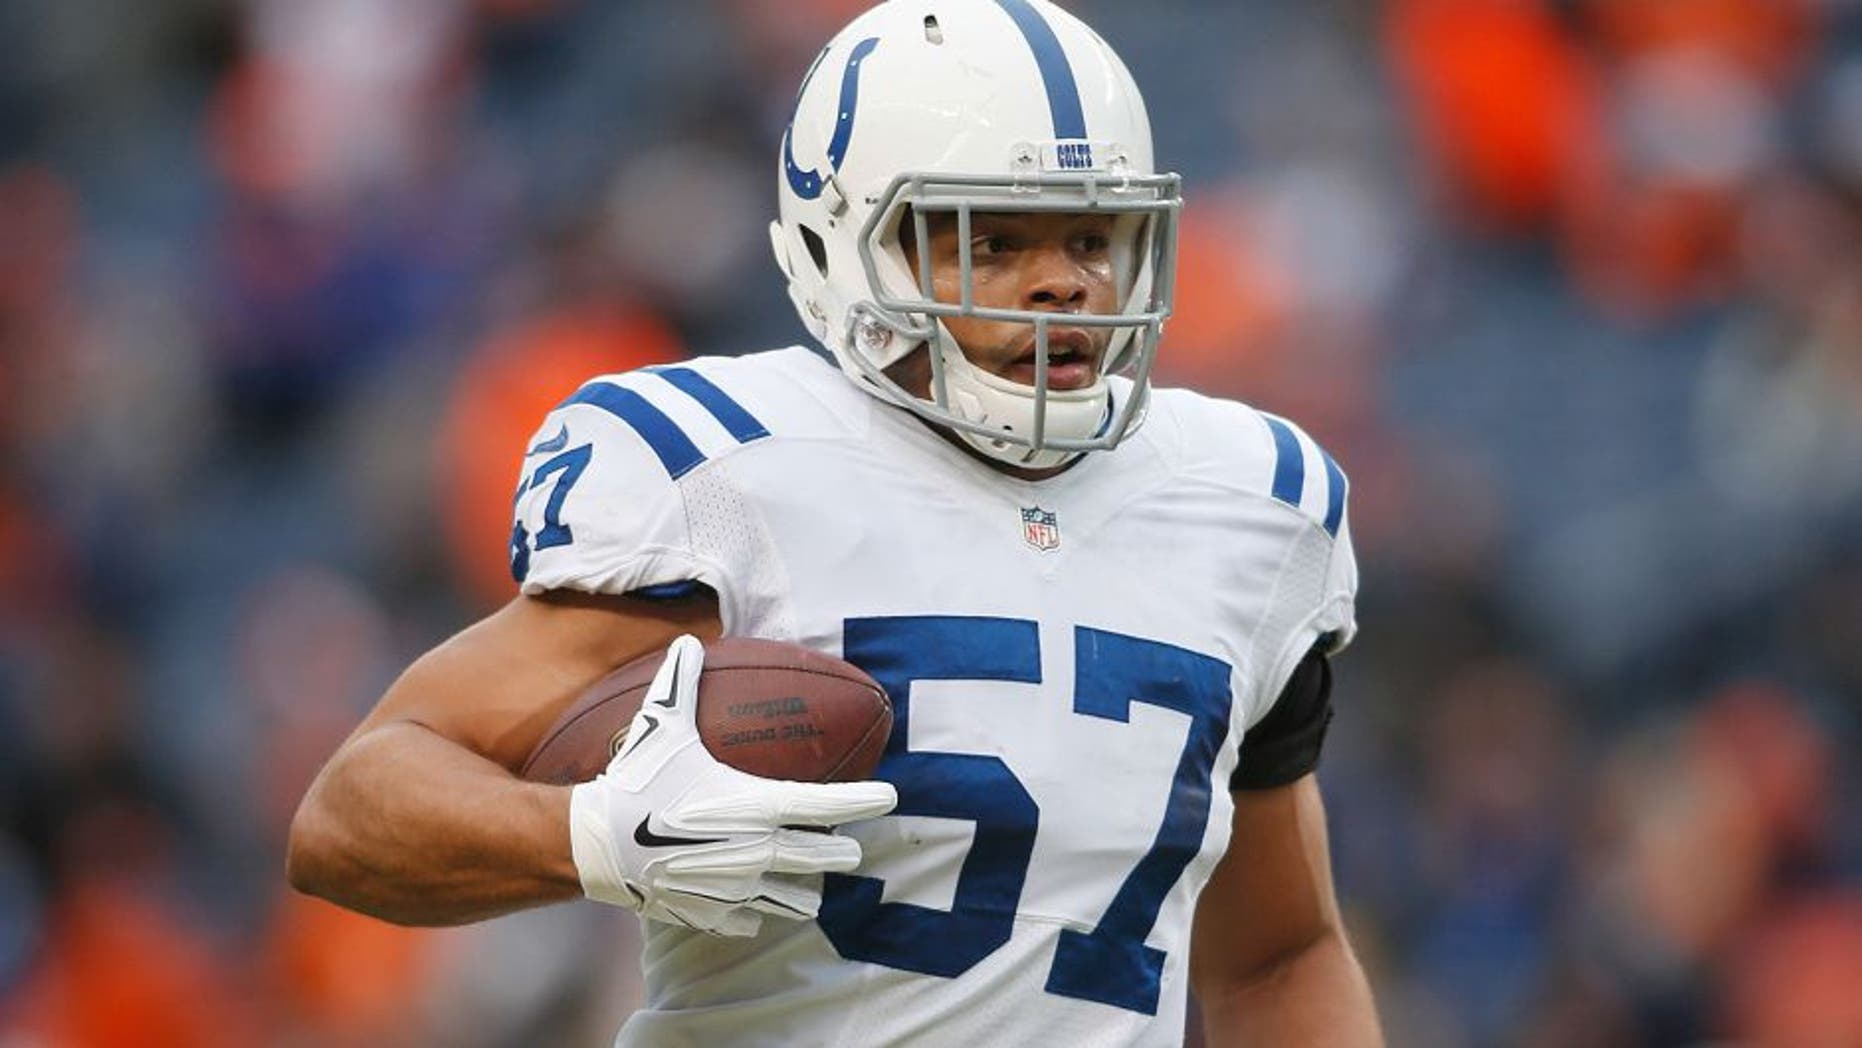 Jan 11, 2015; Denver, CO, USA; Indianapolis Colts outside linebacker Josh McNary (57) in the 2014 AFC Divisional playoff football game against the Denver Broncos at Sports Authority Field at Mile High. Mandatory Credit: Chris Humphreys-USA TODAY Sports